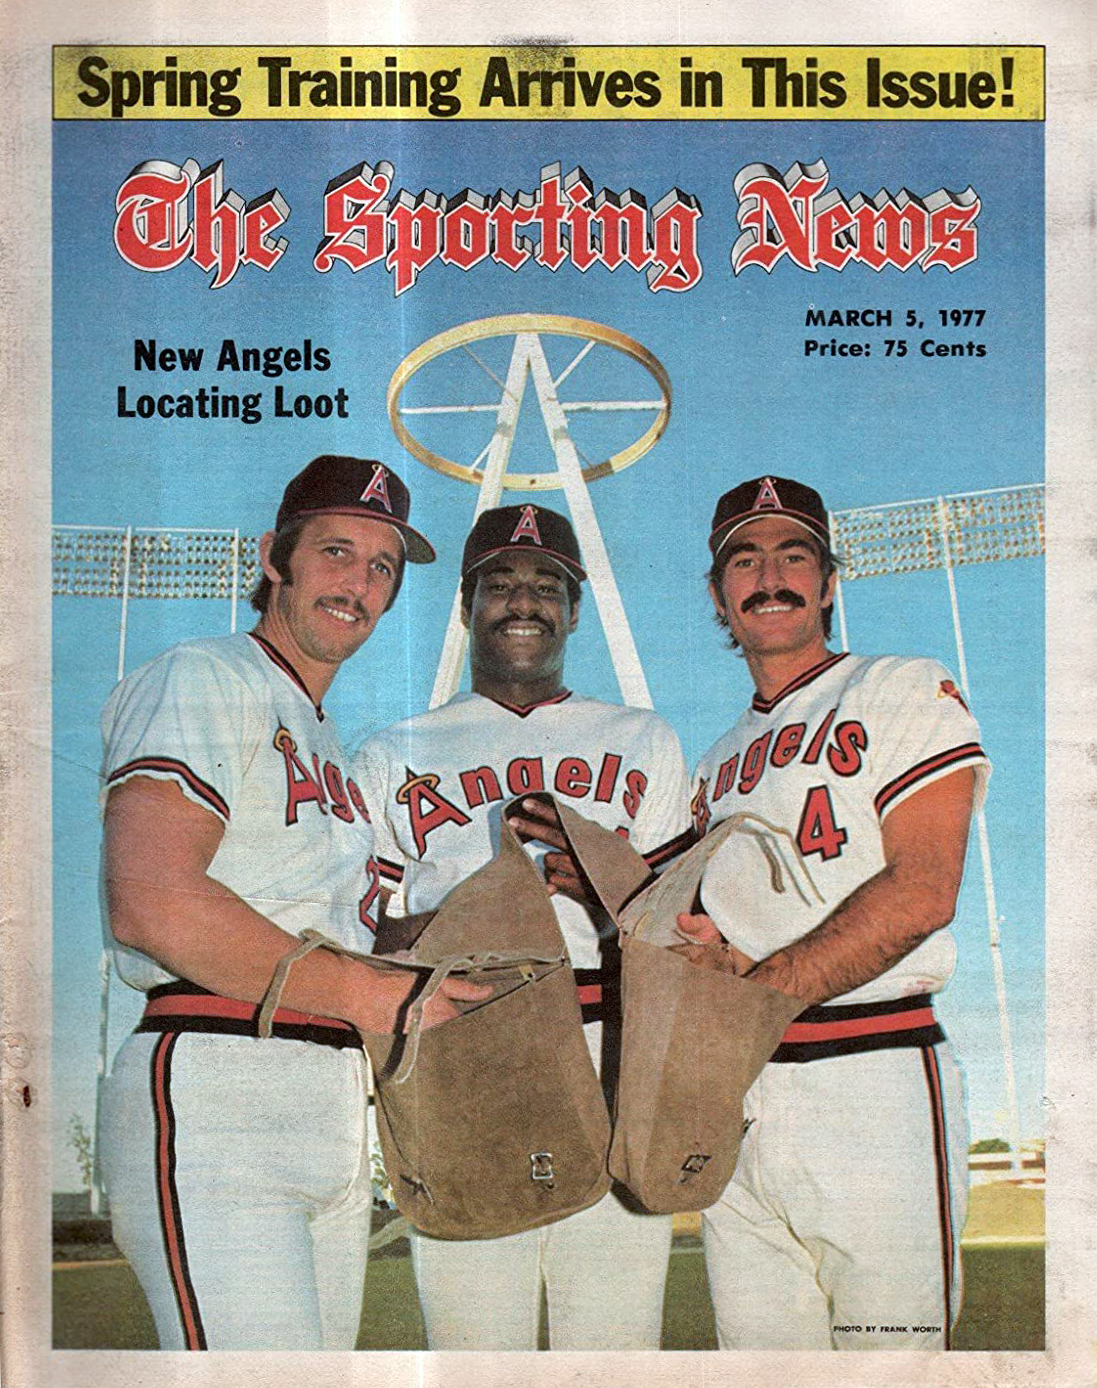 1977 Angels / The Sporting News